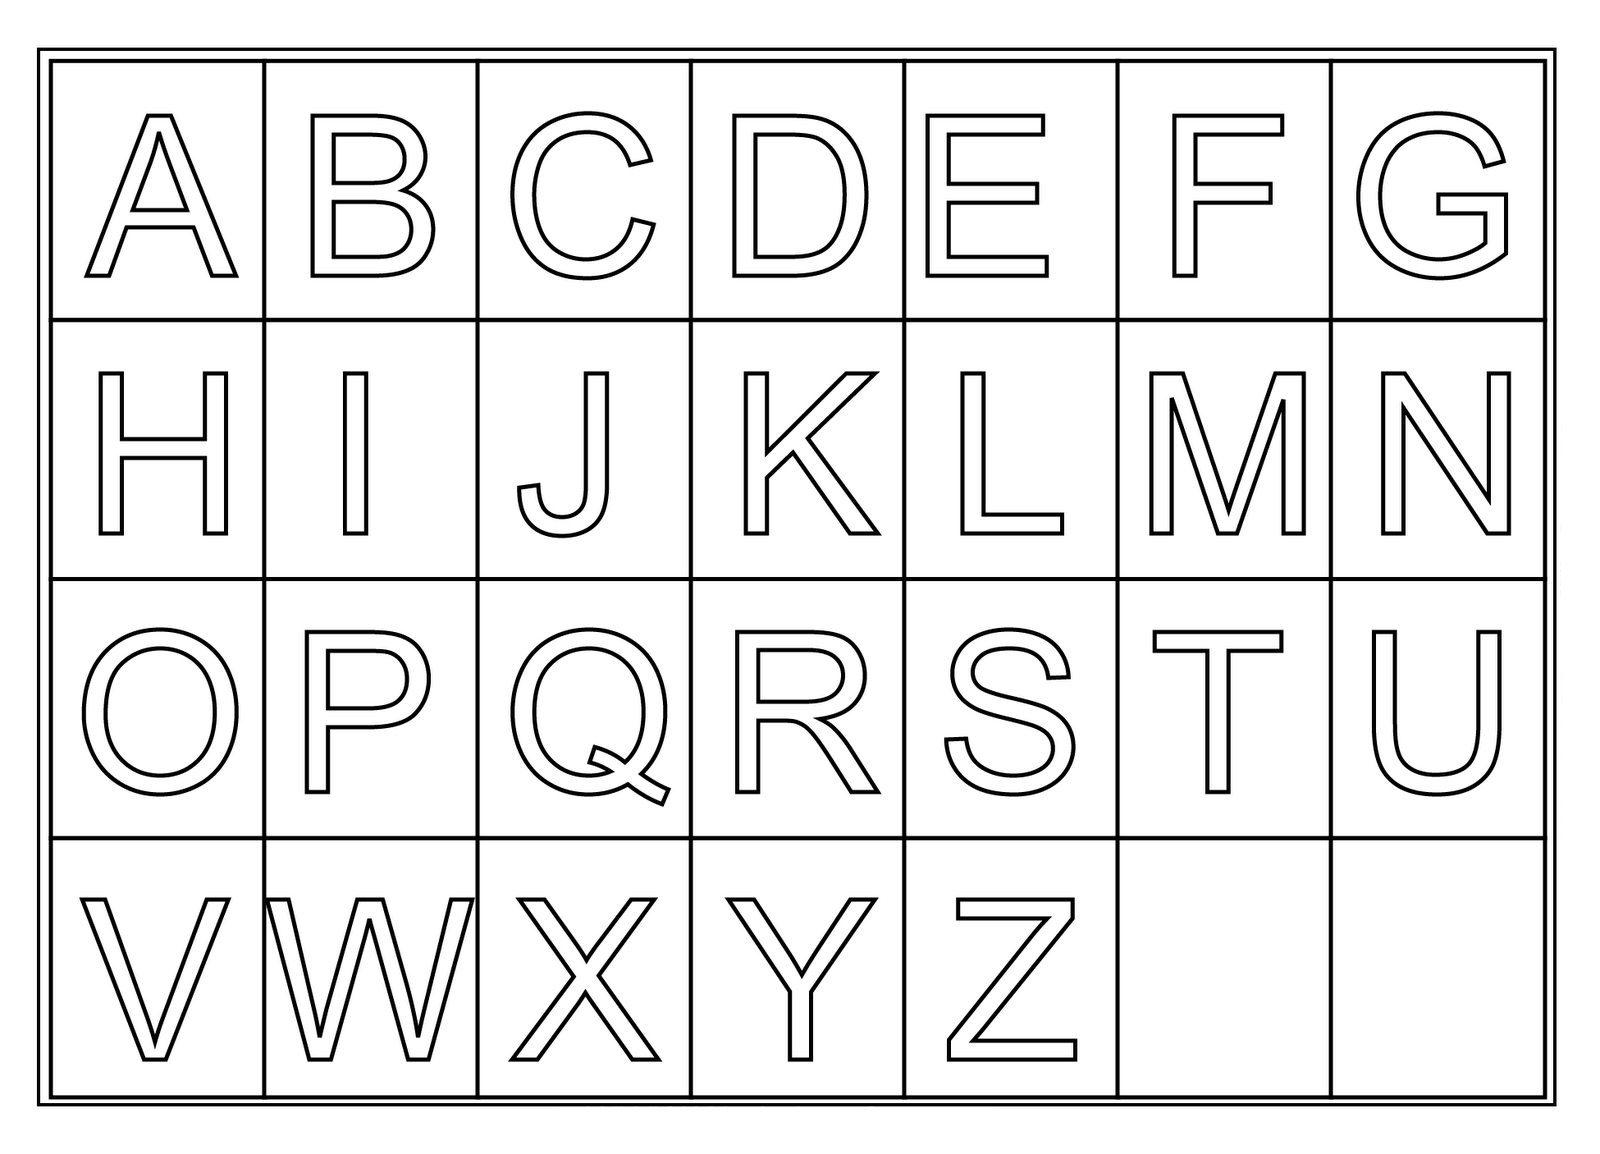 Free Printable Letter Displays | - Clip Art Library - Free Printable Alphabet Letters For Display